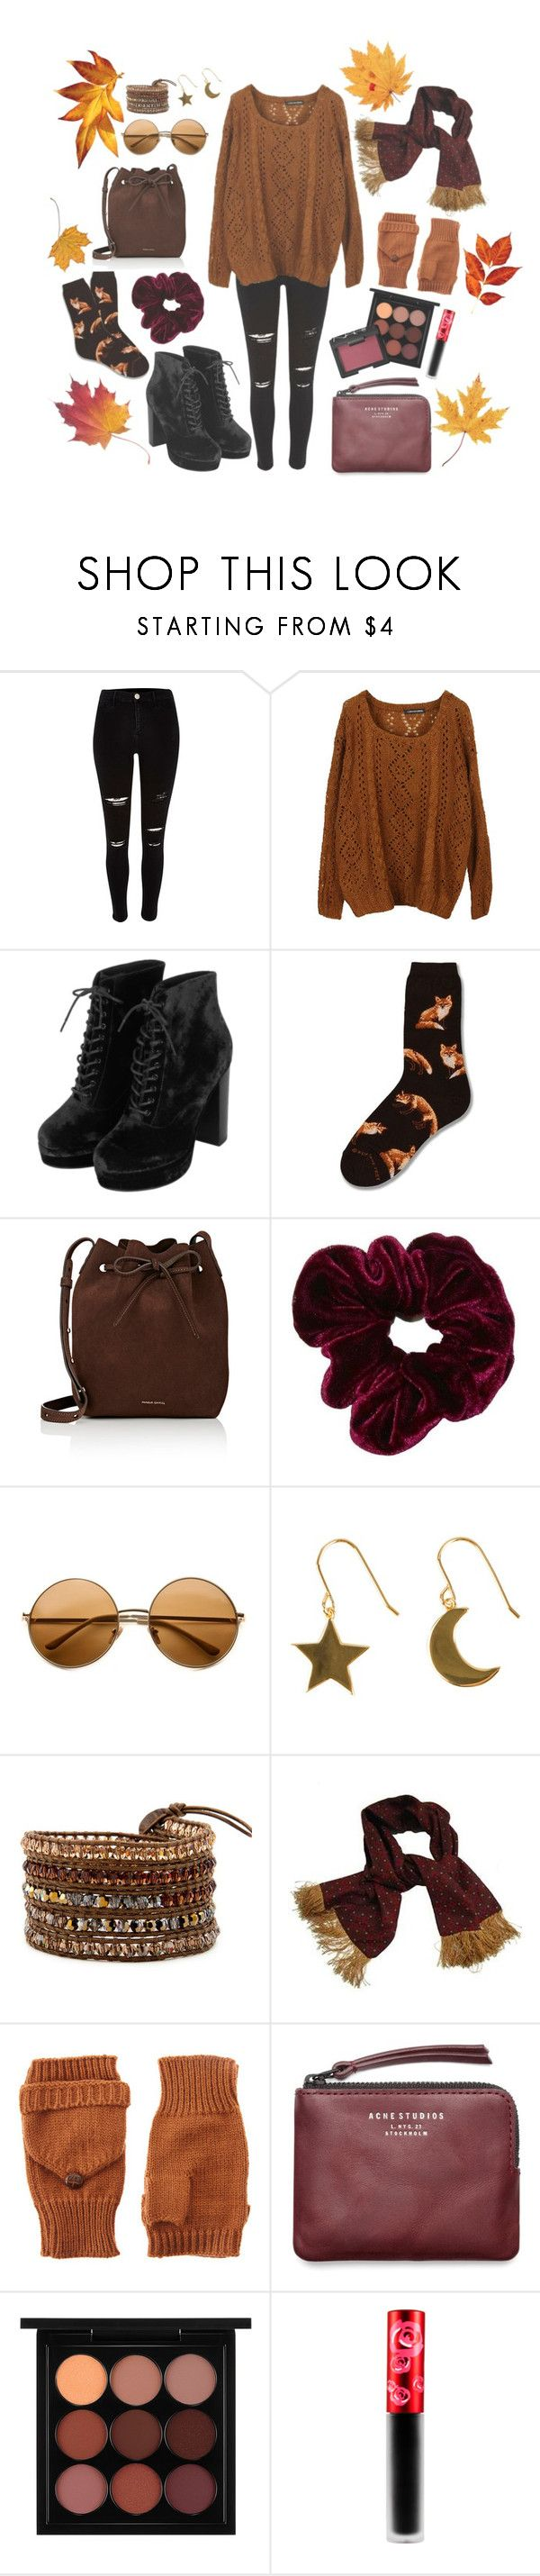 """""""It's literally June I'm sorry"""" by wearetheflowersofevil ❤ liked on Polyvore featuring River Island, Topshop, Mansur Gavriel, SOPHIE by SOPHIE, ASOS, Acne Studios, MAC Cosmetics, Lime Crime and NARS Cosmetics"""